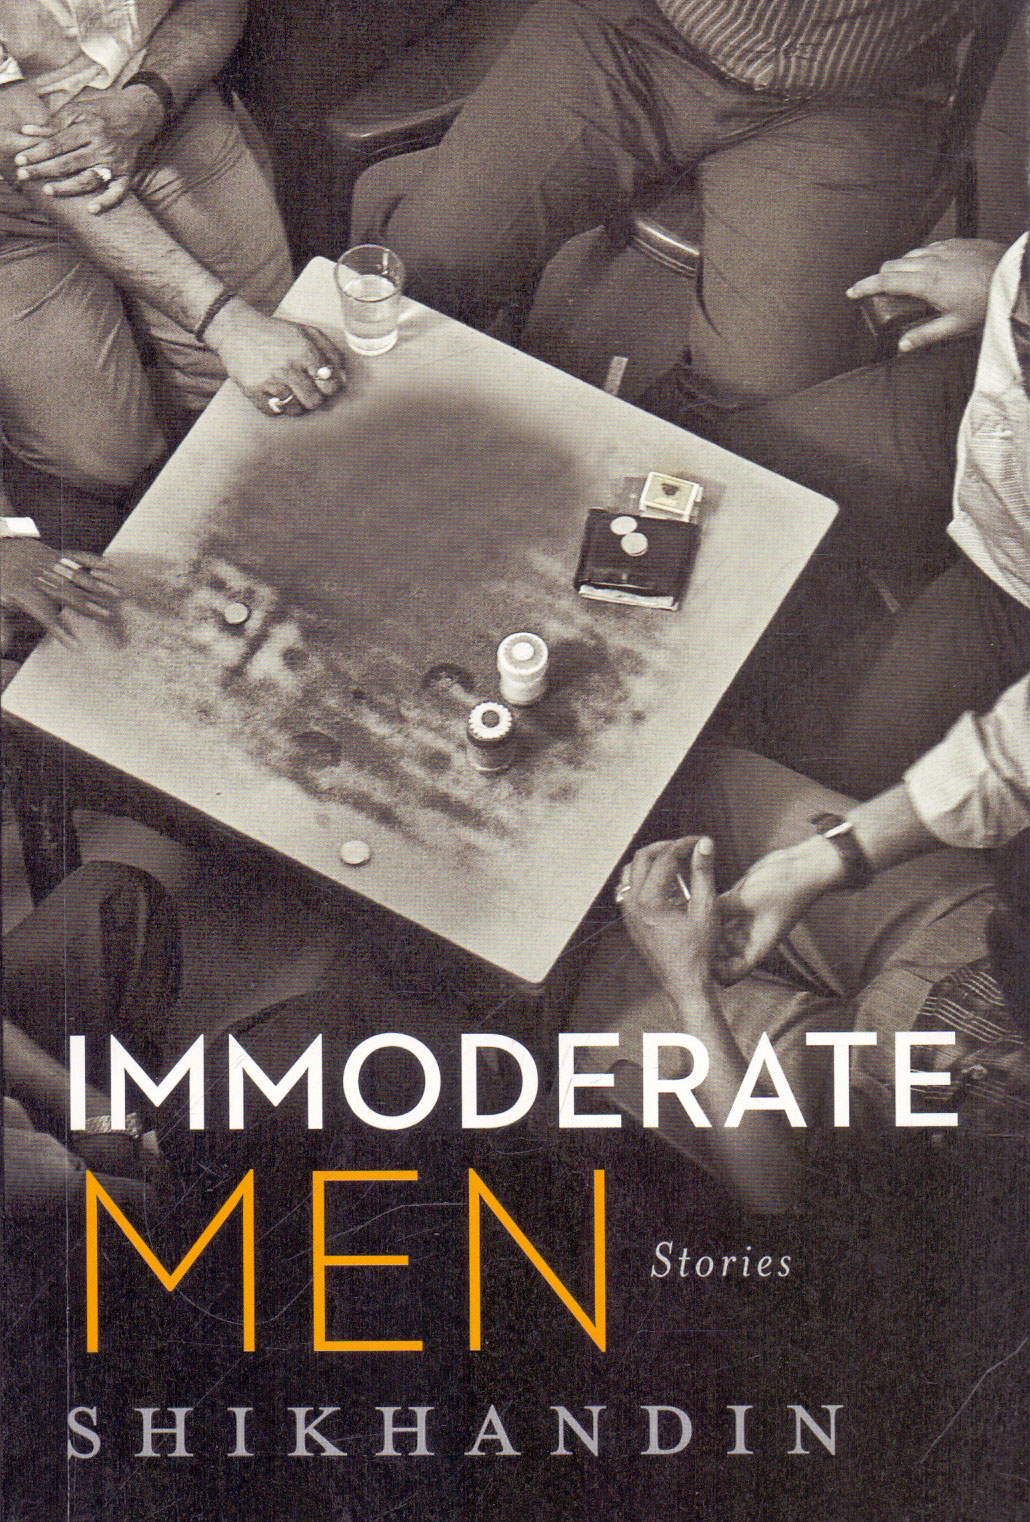 Immoderate Men